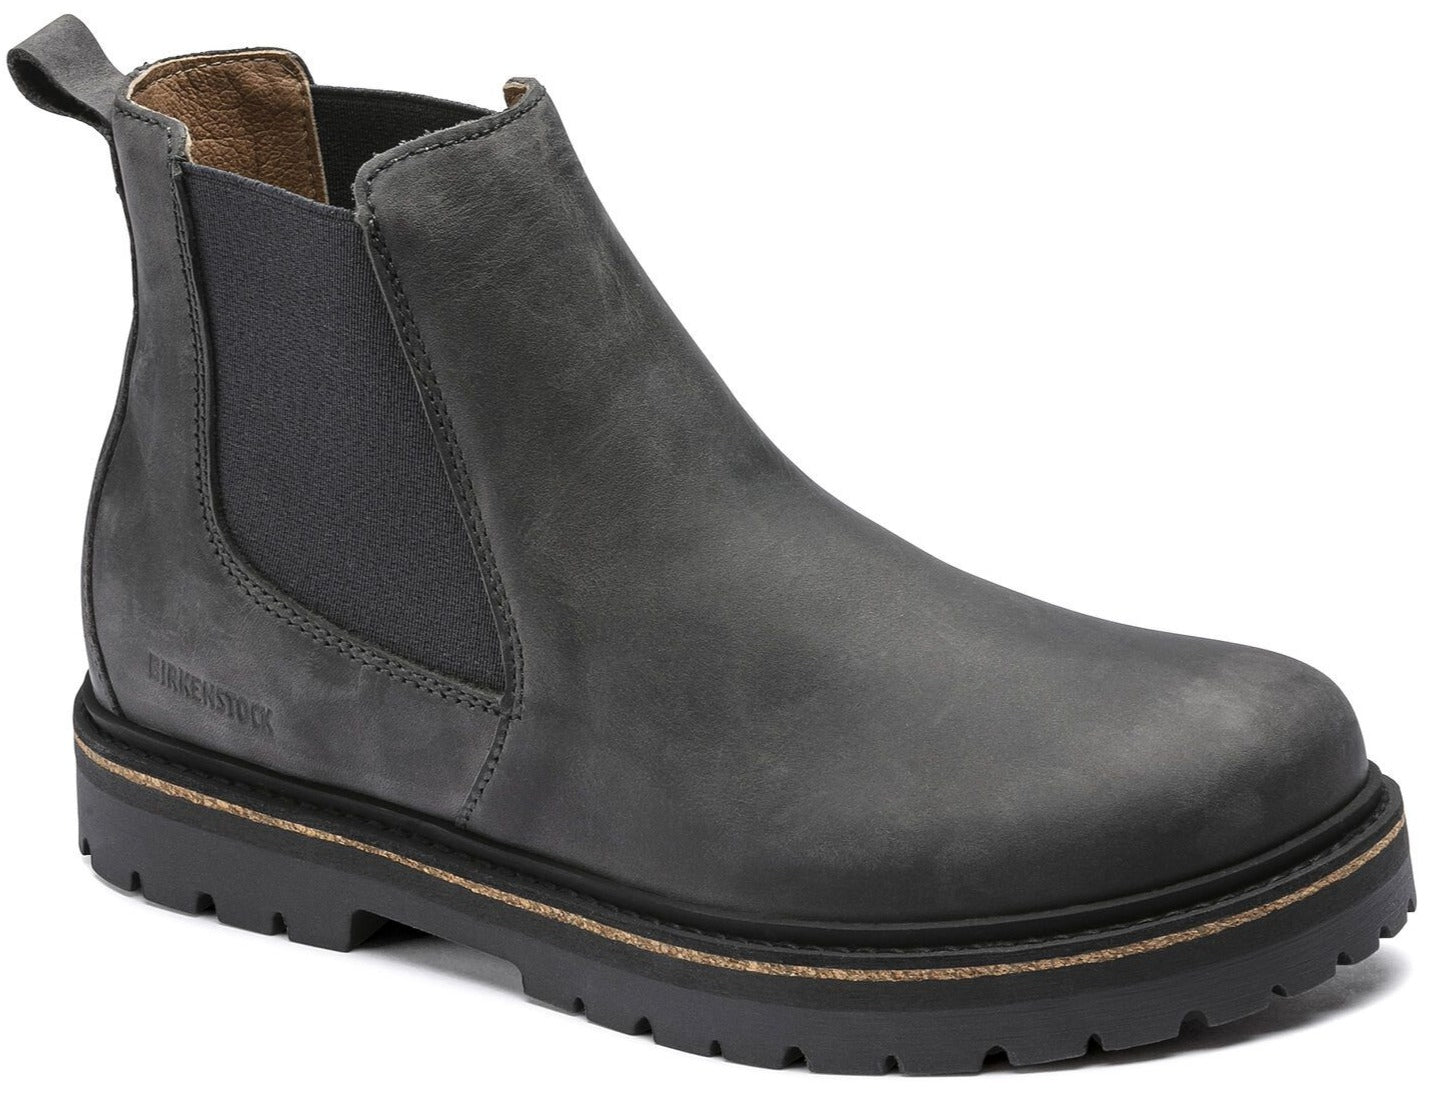 Stalon Women - Graphite Nubuck Leather